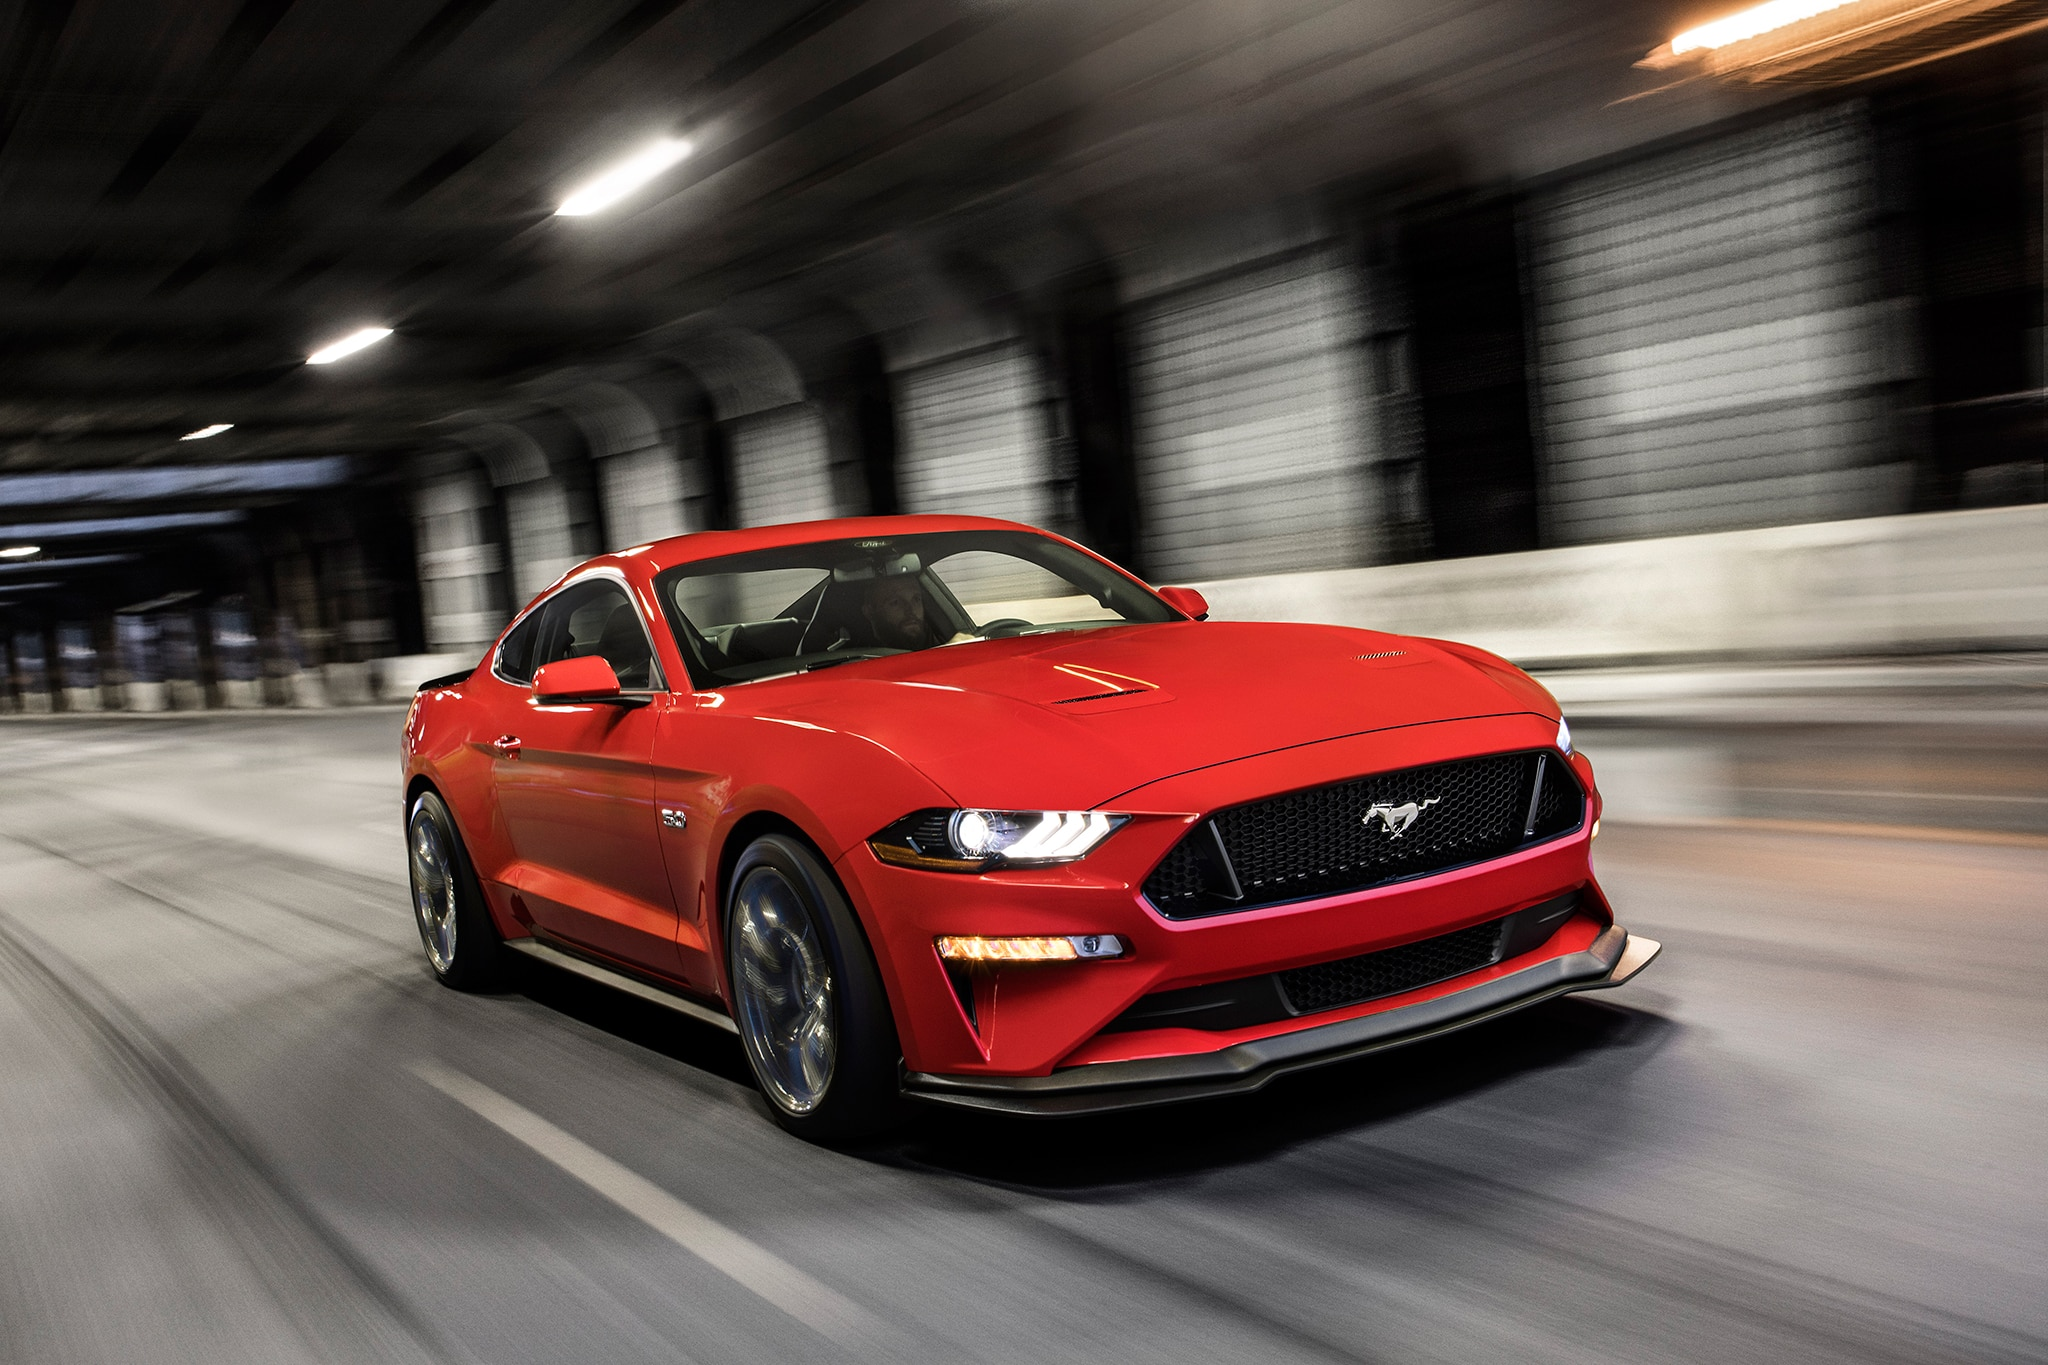 New Ford Mustang GT Performance Pack Challenges Camaro SS 1LE